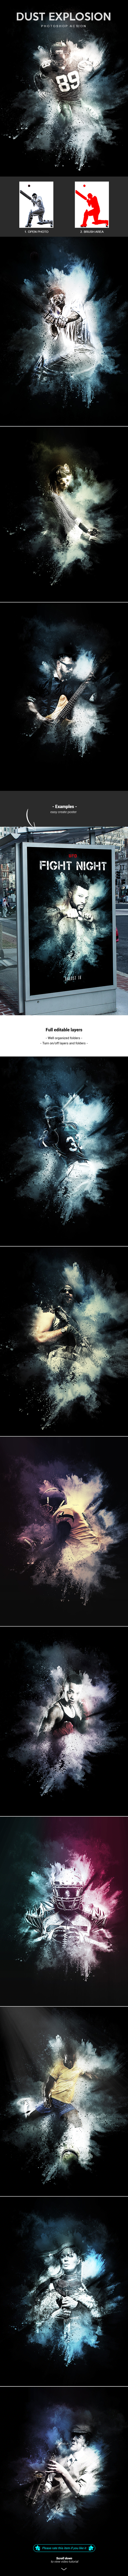 Dust Explosion - Photoshop Action - Photo Effects Actions